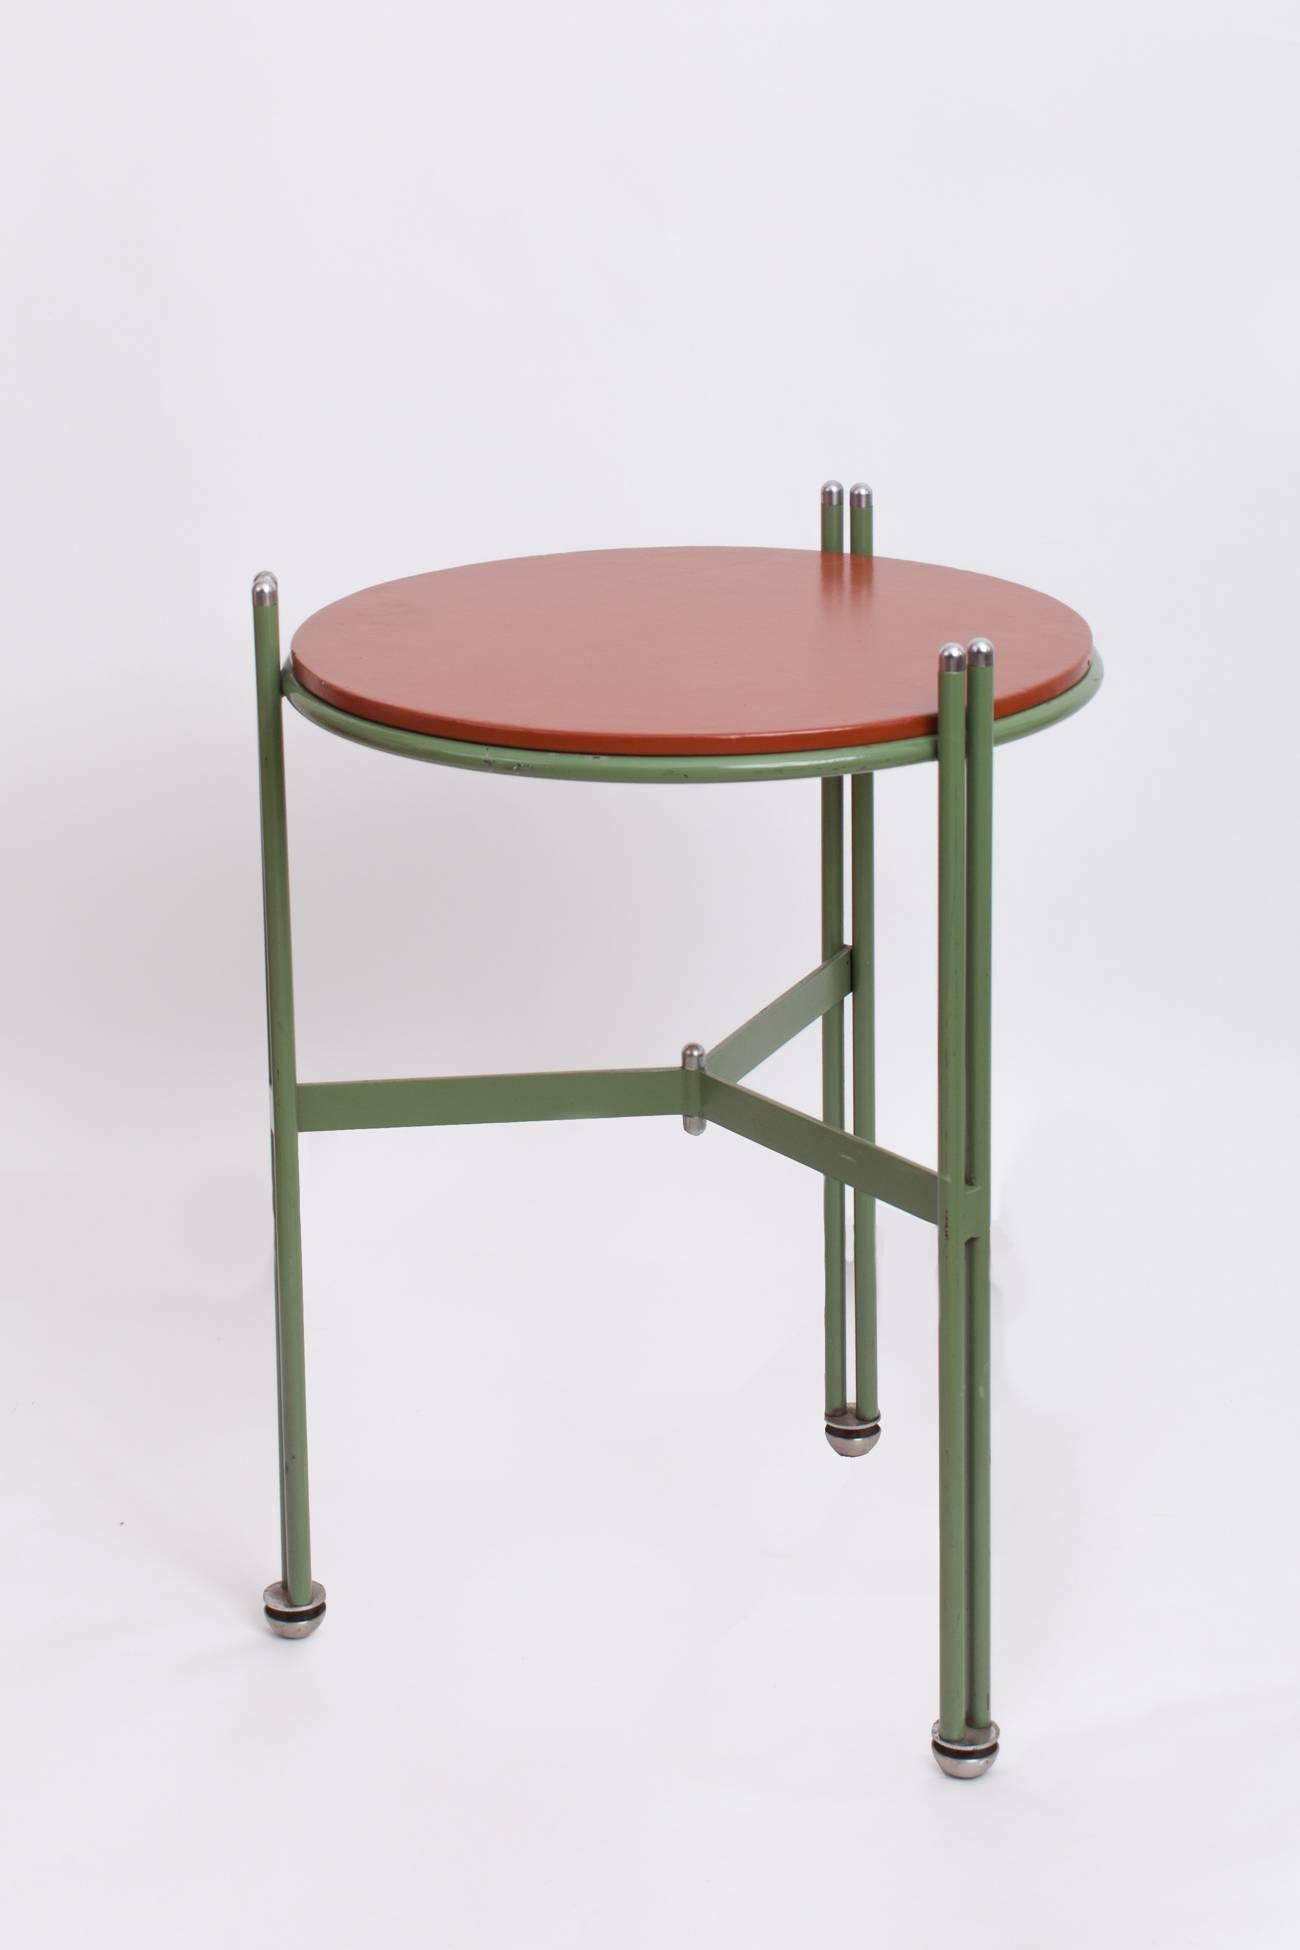 Mid Century Modern Bauhaus Enameled And Leather Side Tables In Green And  Red, Germany